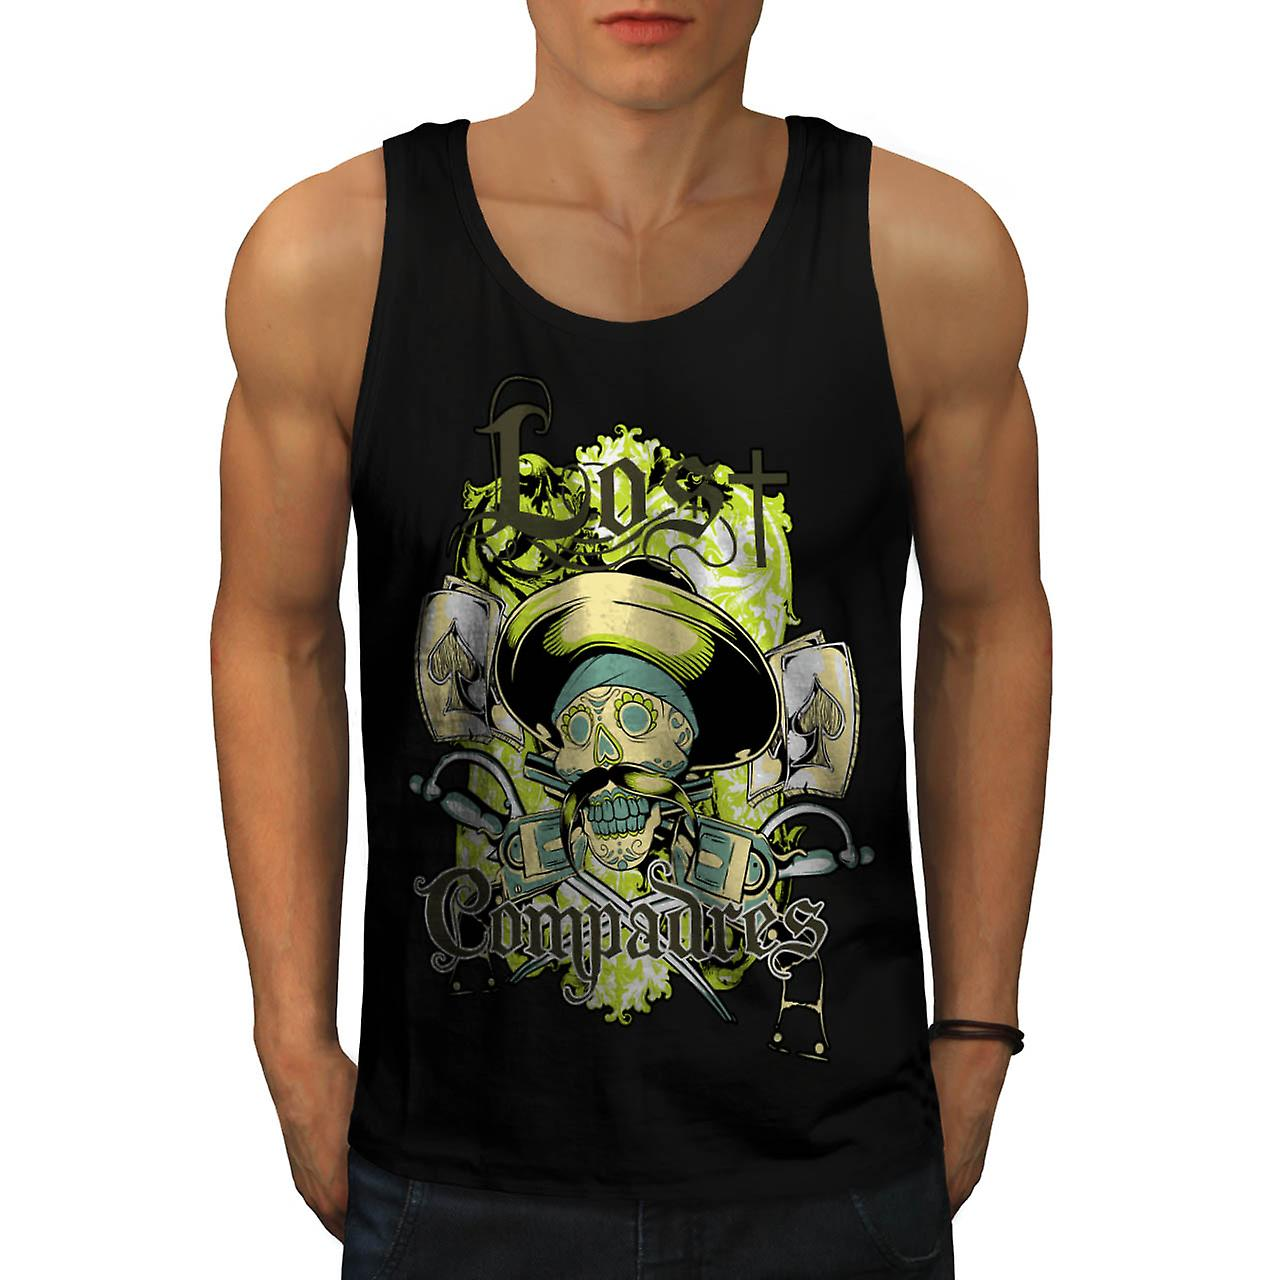 Lost Compadres Team Mexico Man Men Black Tank Top | Wellcoda